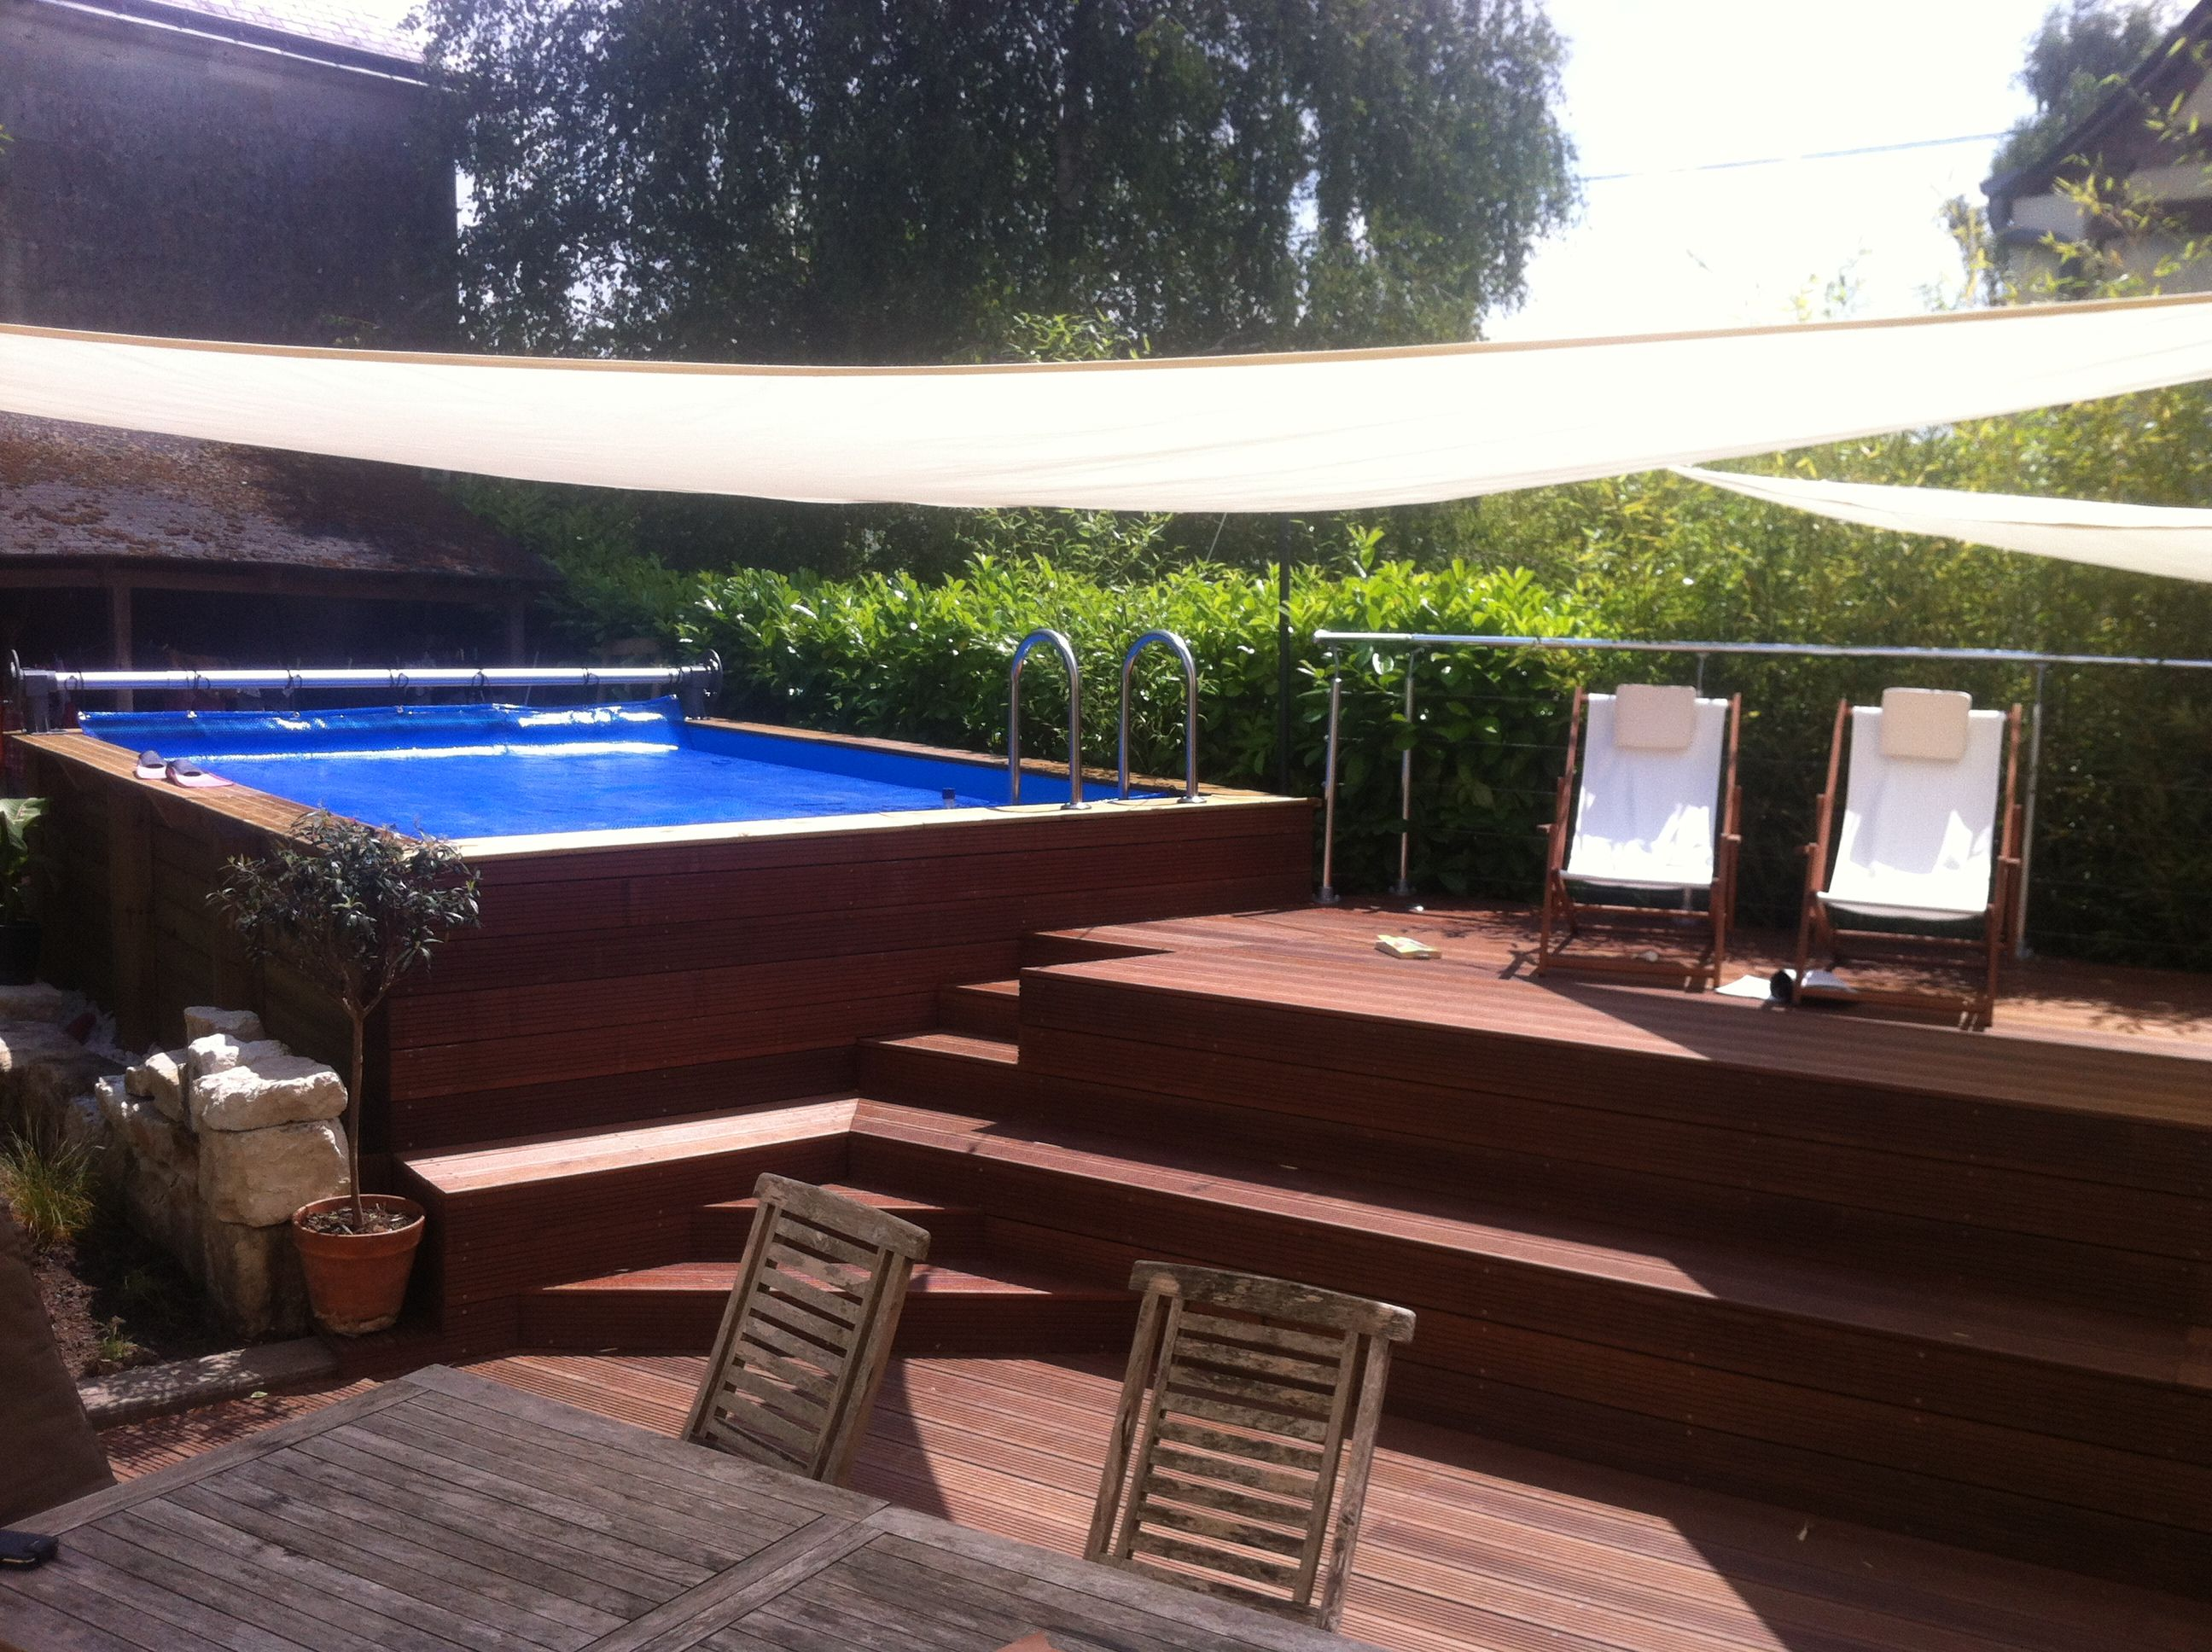 Piscine integree dans terrasse homeisu for Piscine bois 9x4